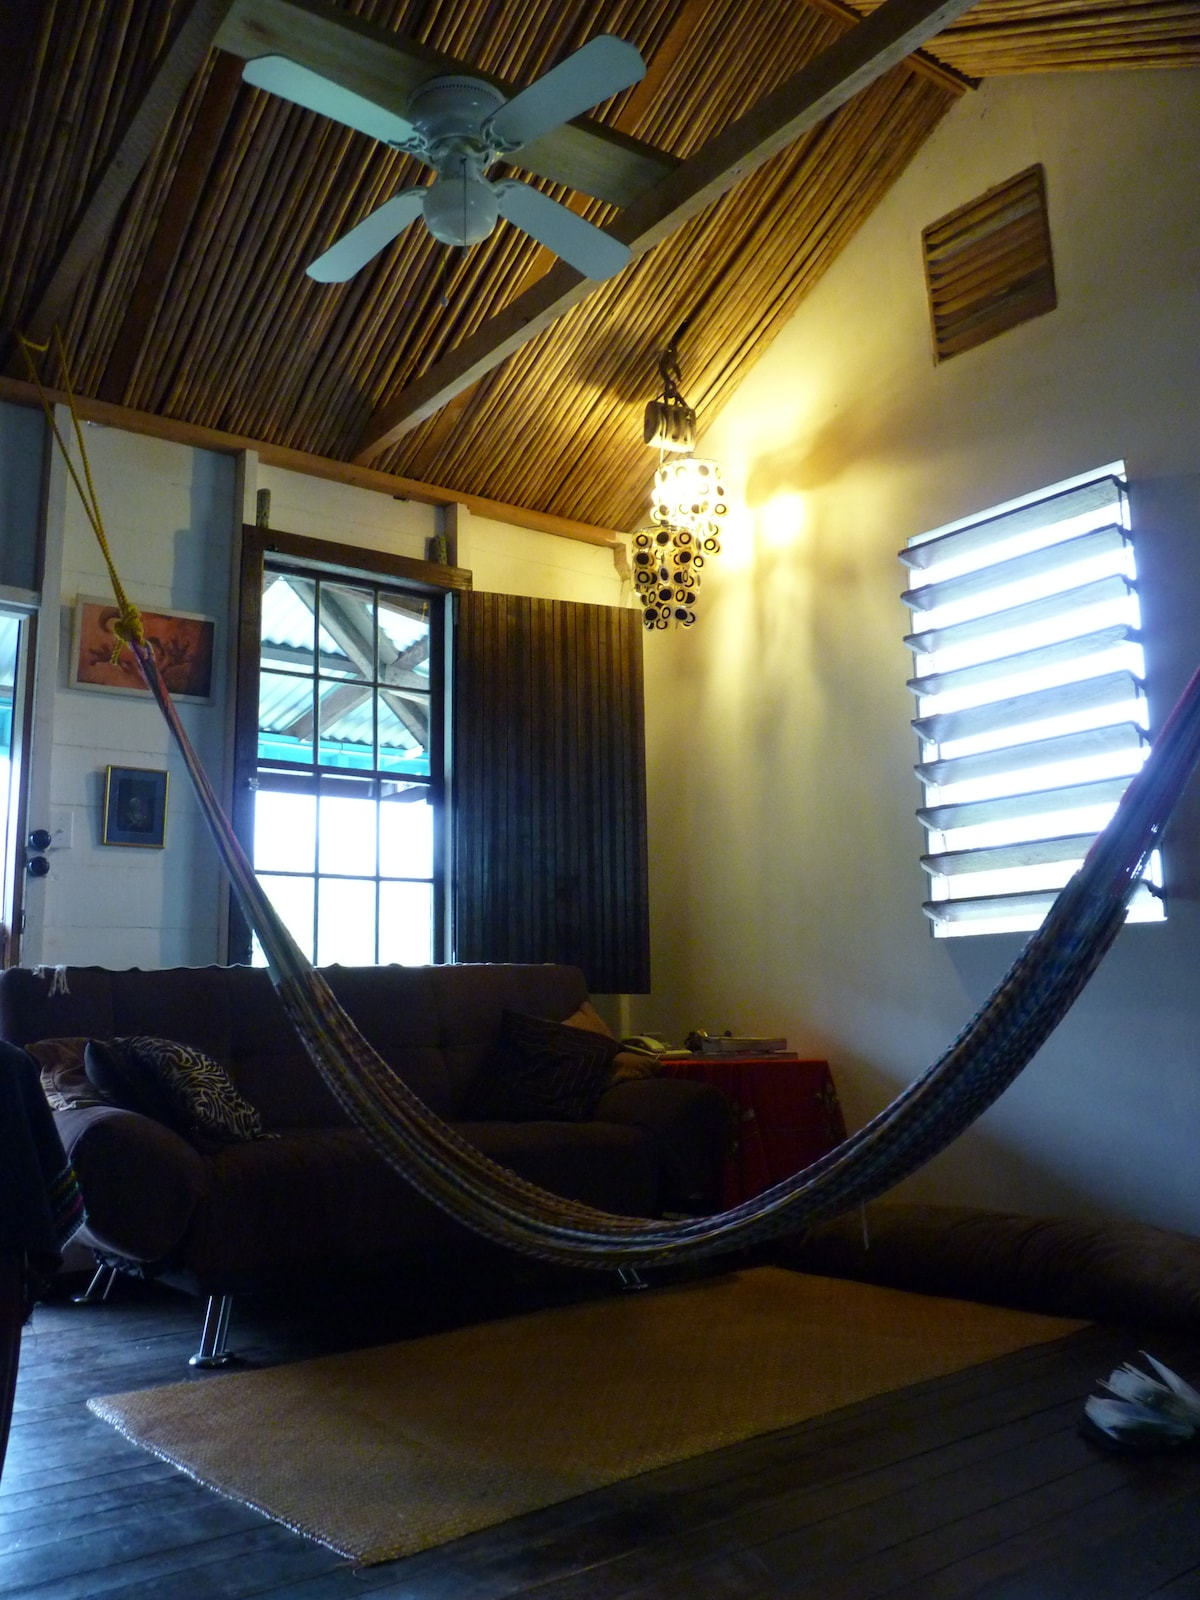 Open Plan living room sofa bed and Hammock.